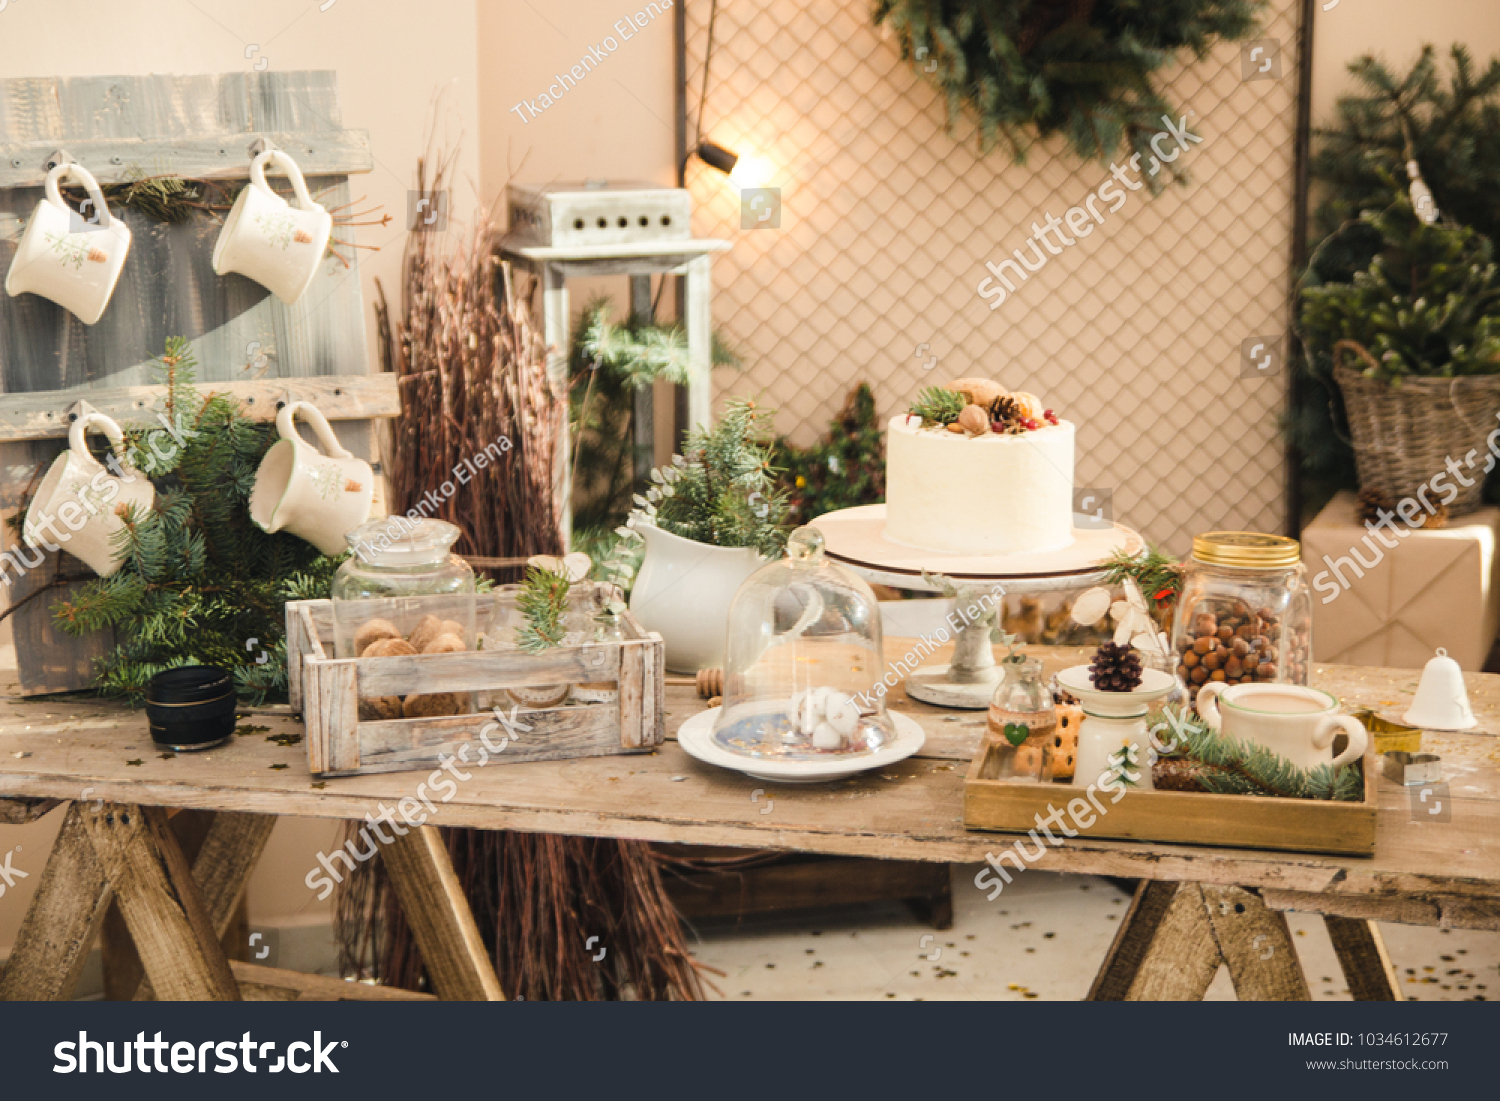 Cuisine Cosy Christmas Cosy Home Stock Photo Edit Now 1034612677 Shutterstock